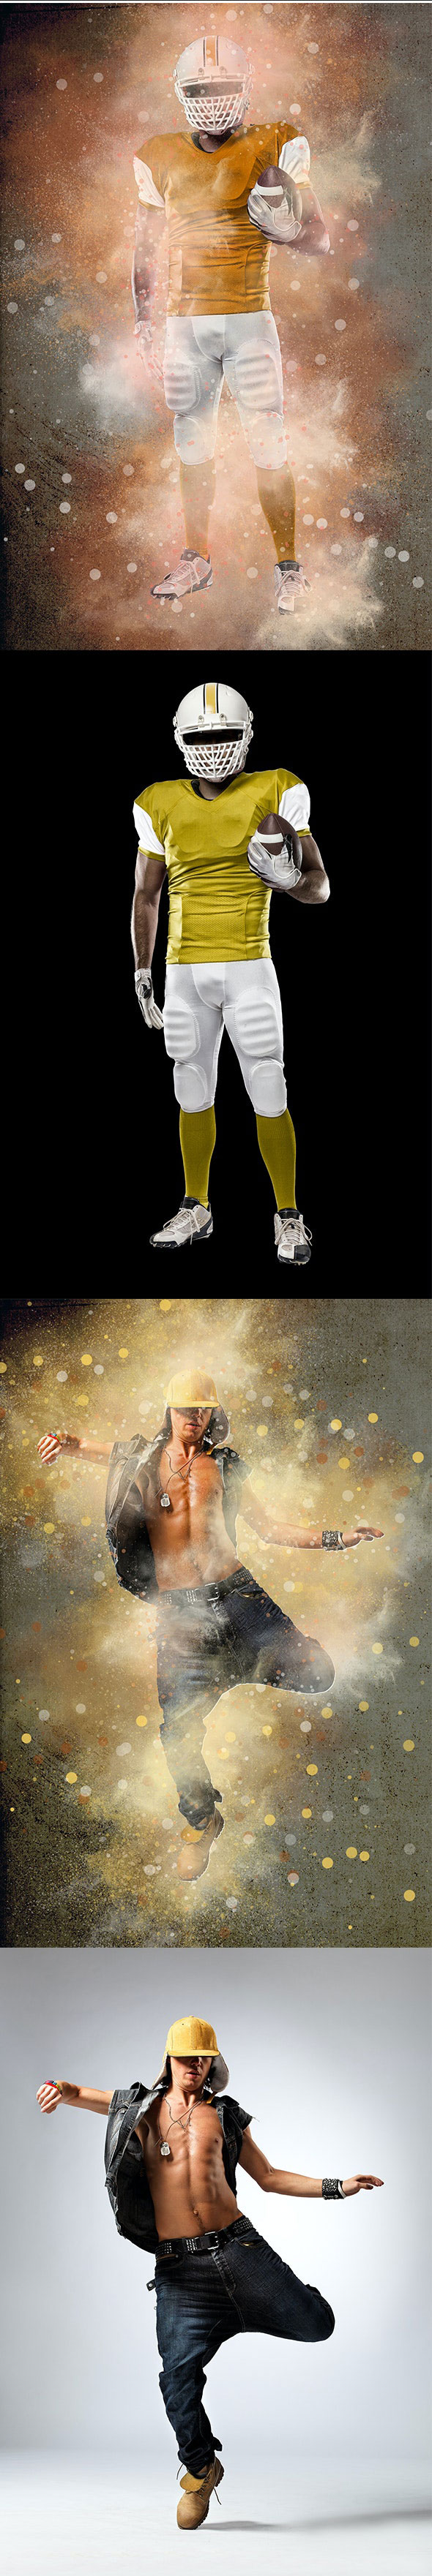 GraphicRiver Explosion Photoshop Action 26570473 Free Download